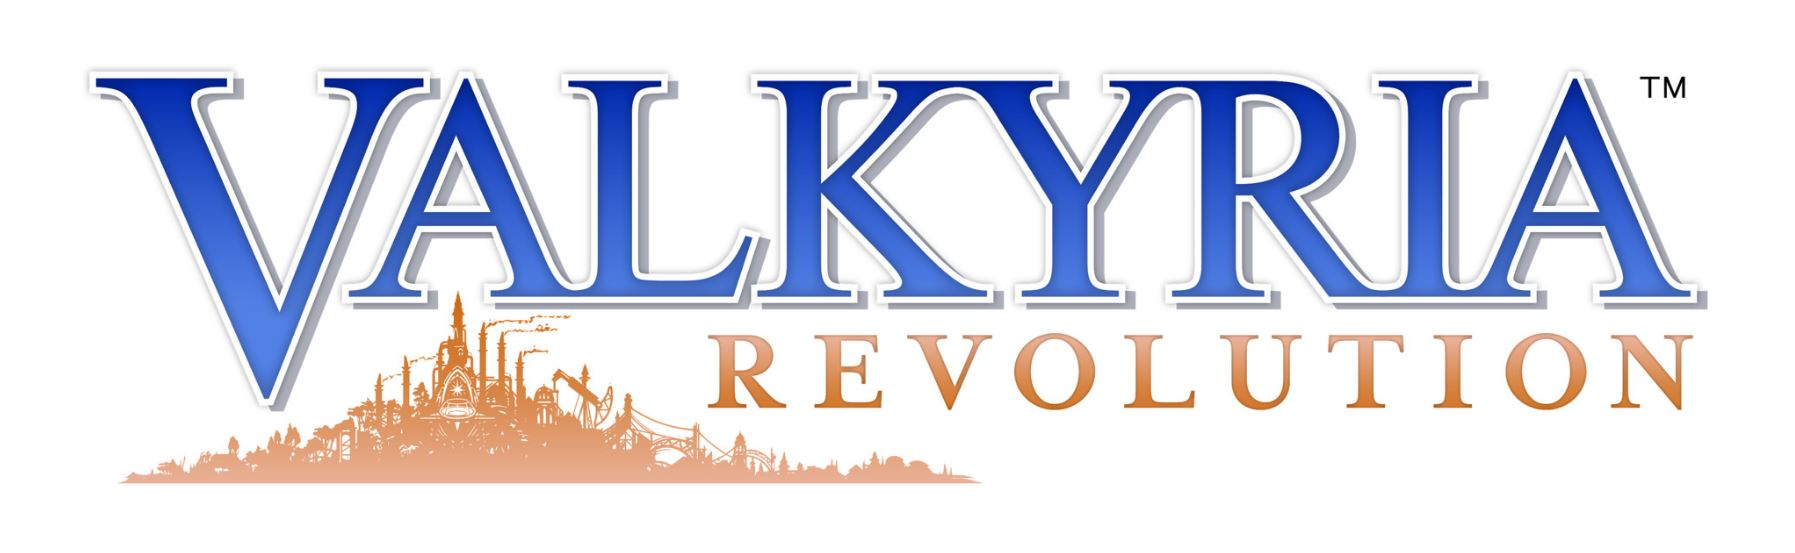 Valkyria Chronicles is getting a sequel titled 'Revolution ...